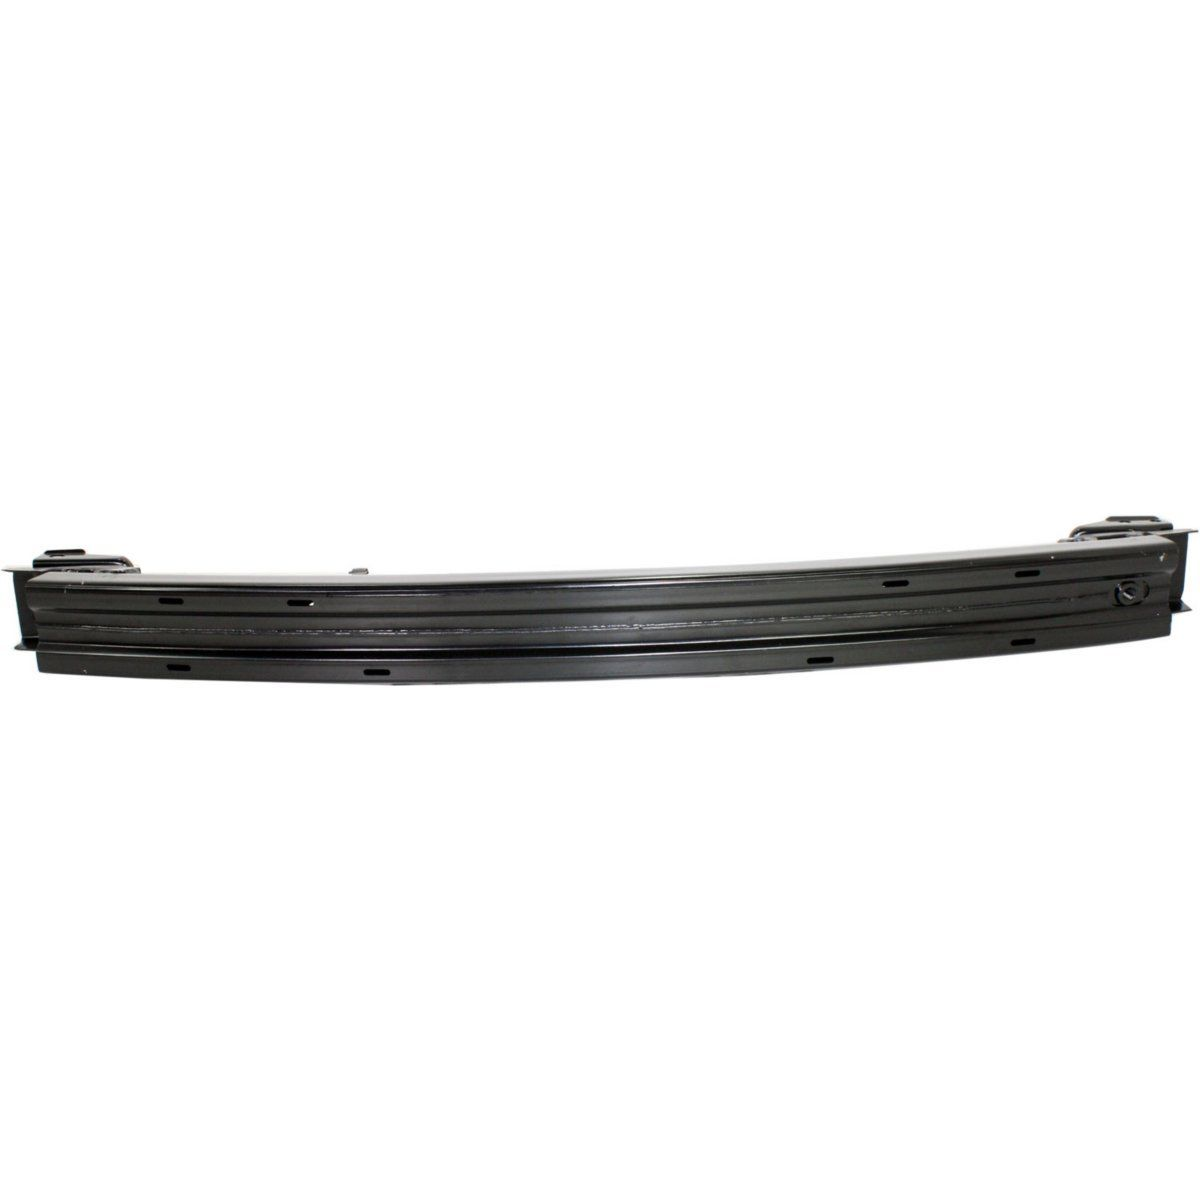 Front Bumper Reinforcement For 2004-08 Acura TL Steel